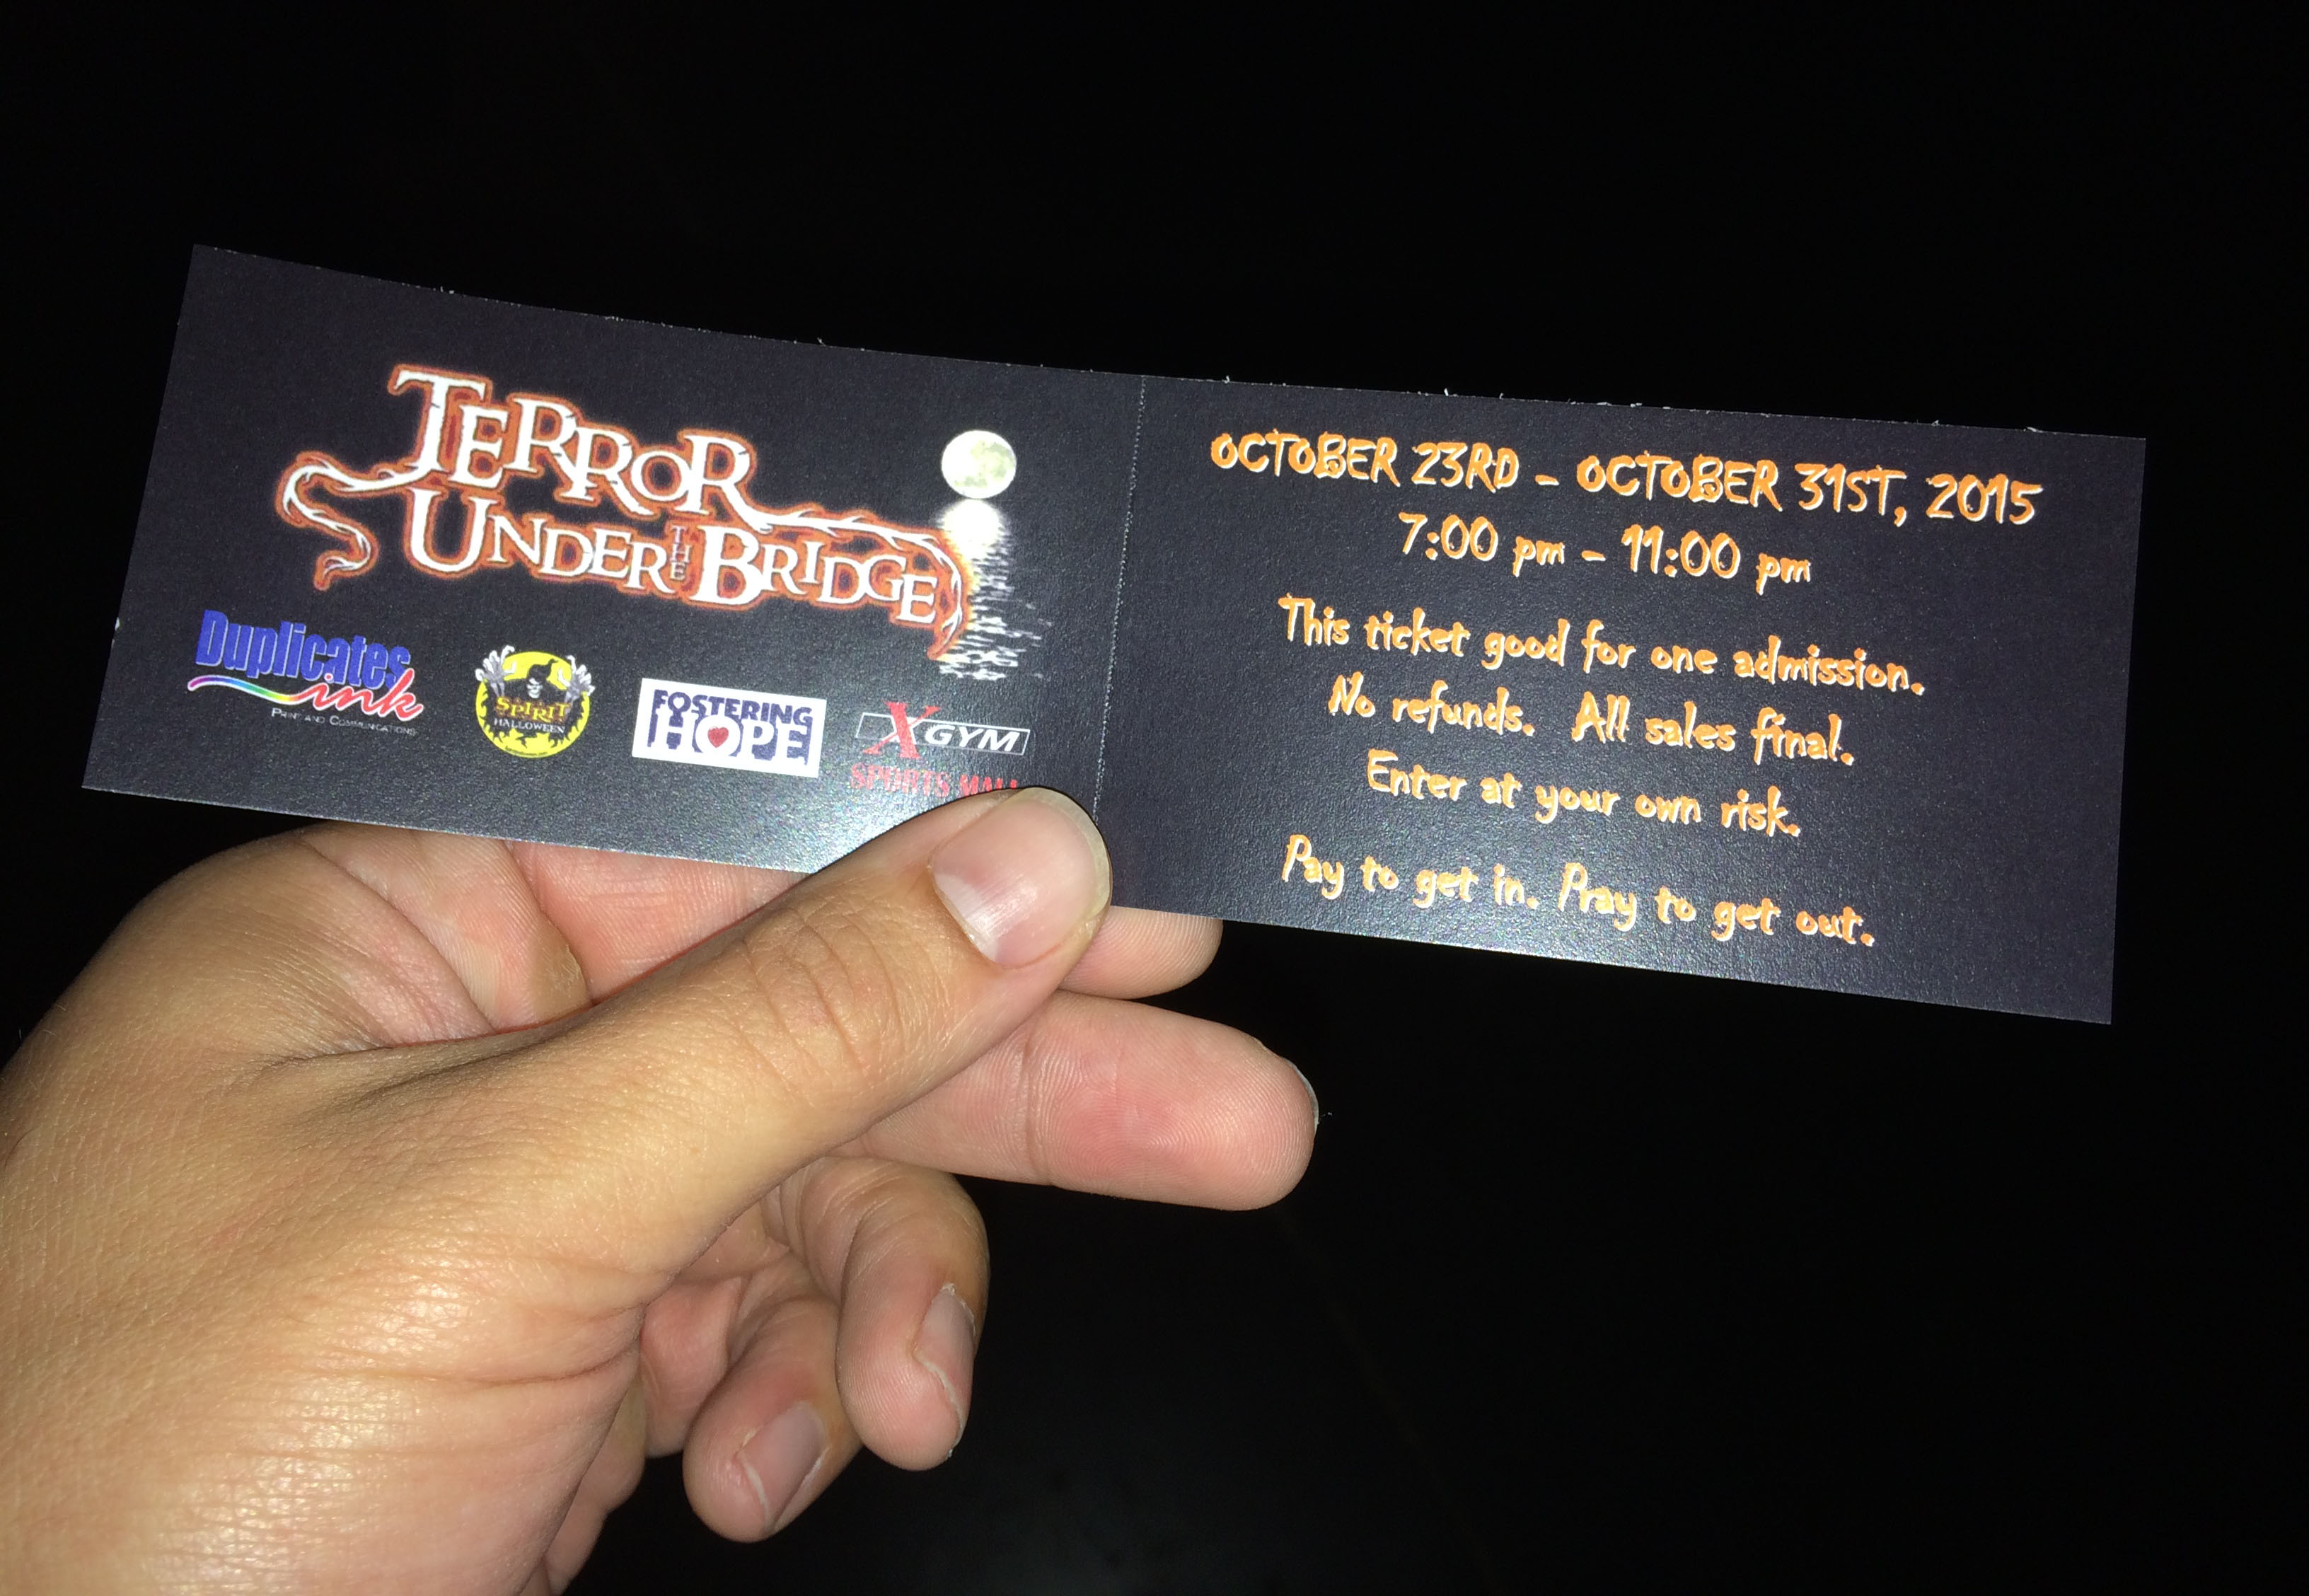 My ticket for Terror Under the Bridge.